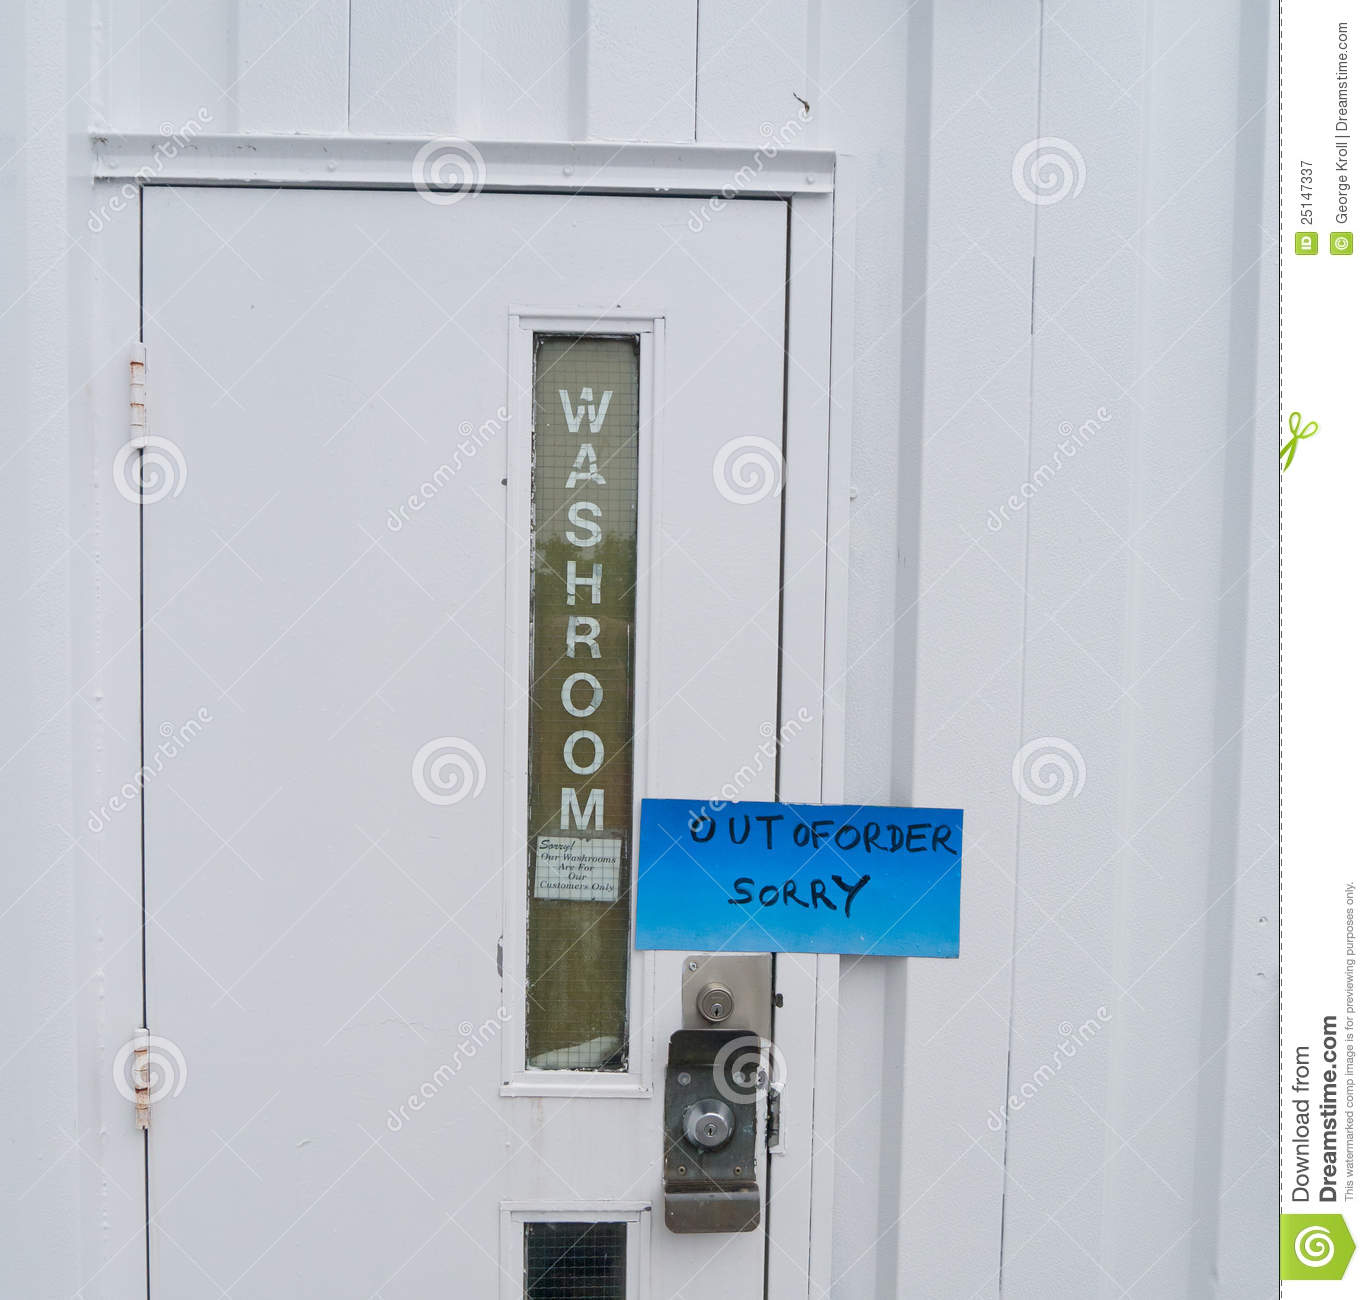 Bathroom Is Out Of Order Royalty Free Stock Photography Image